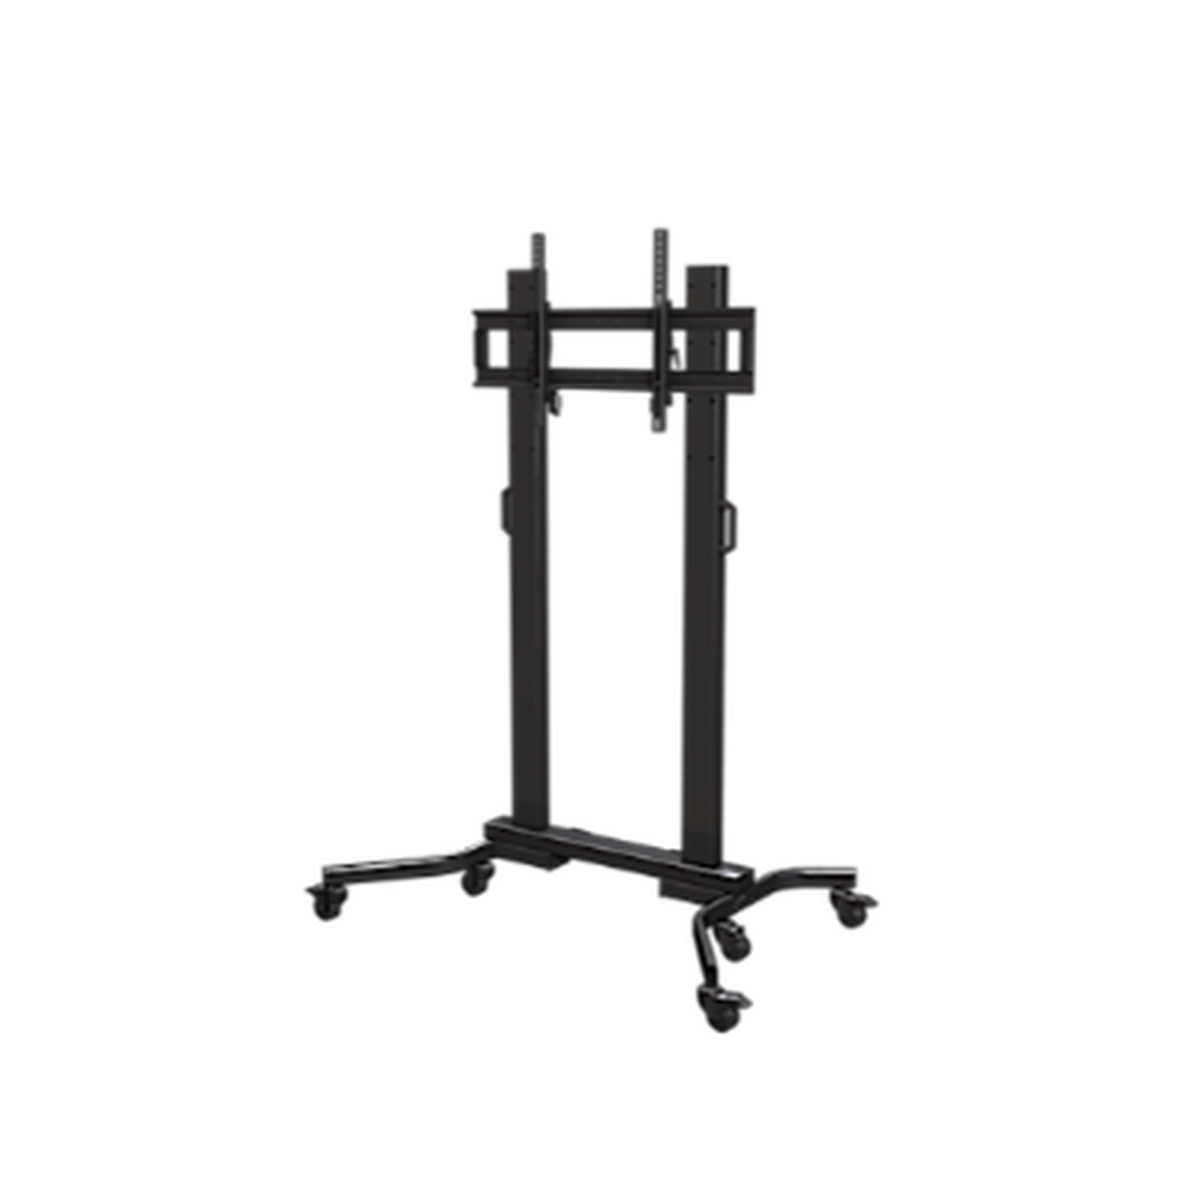 Crimson Heavy duty mobile cart for displays larger than 60